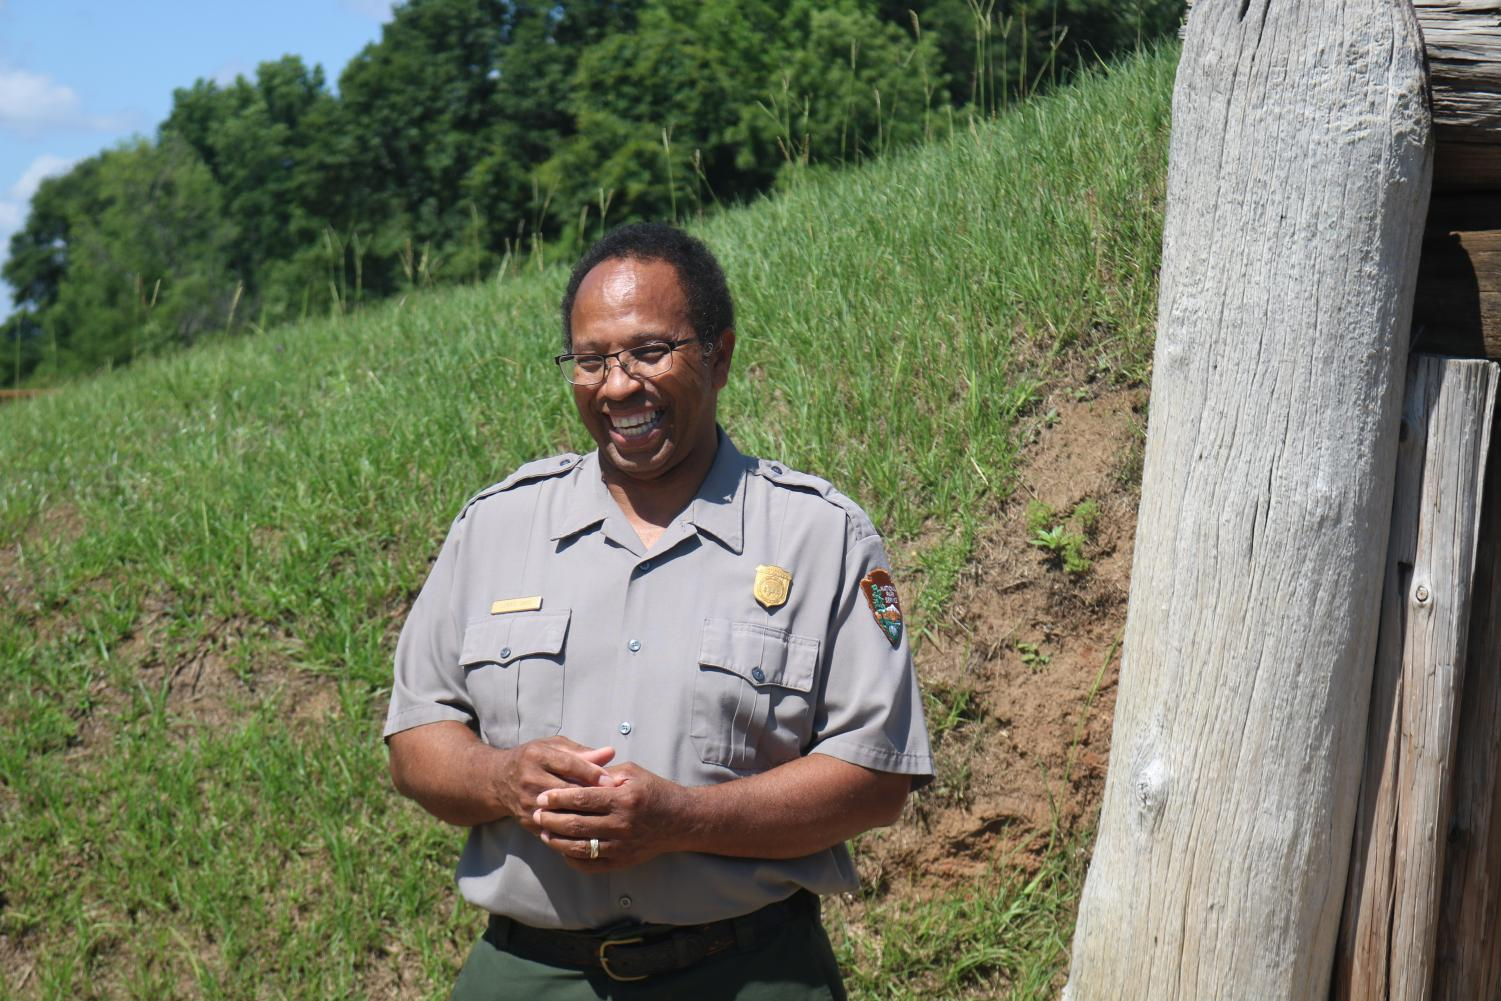 Davis stands outside one of the historical mounds.